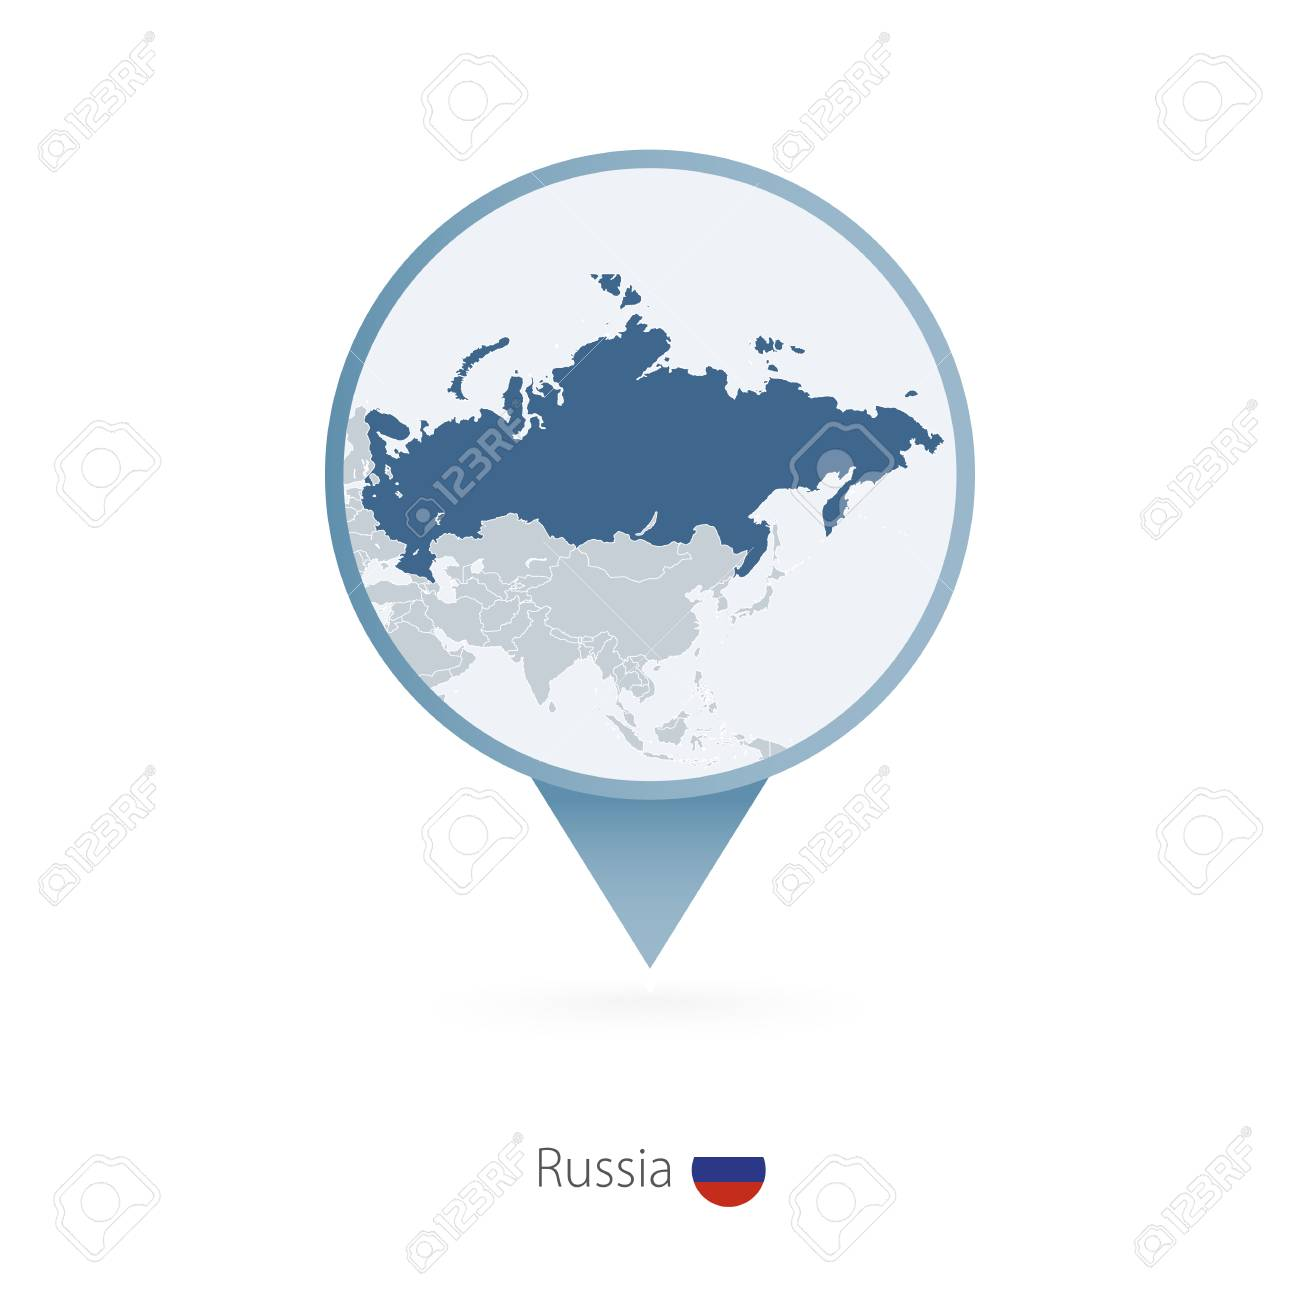 Map Pin With Detailed Map Of Russia And Neighboring Countries